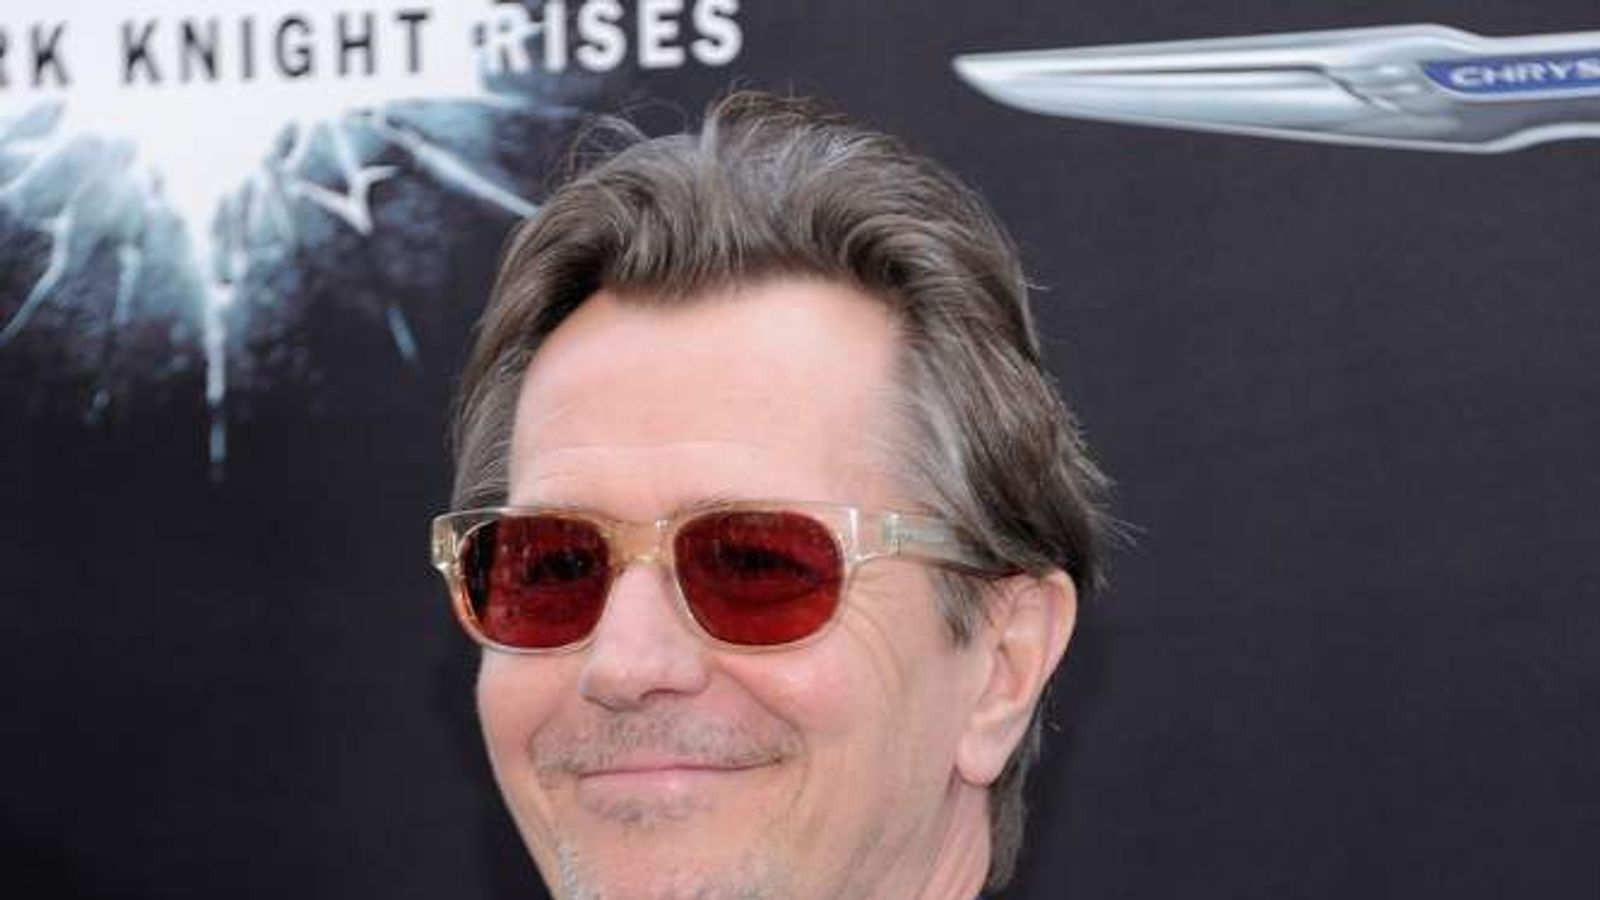 Gary Oldman attends the New York premiere of The Dark Knight Rises